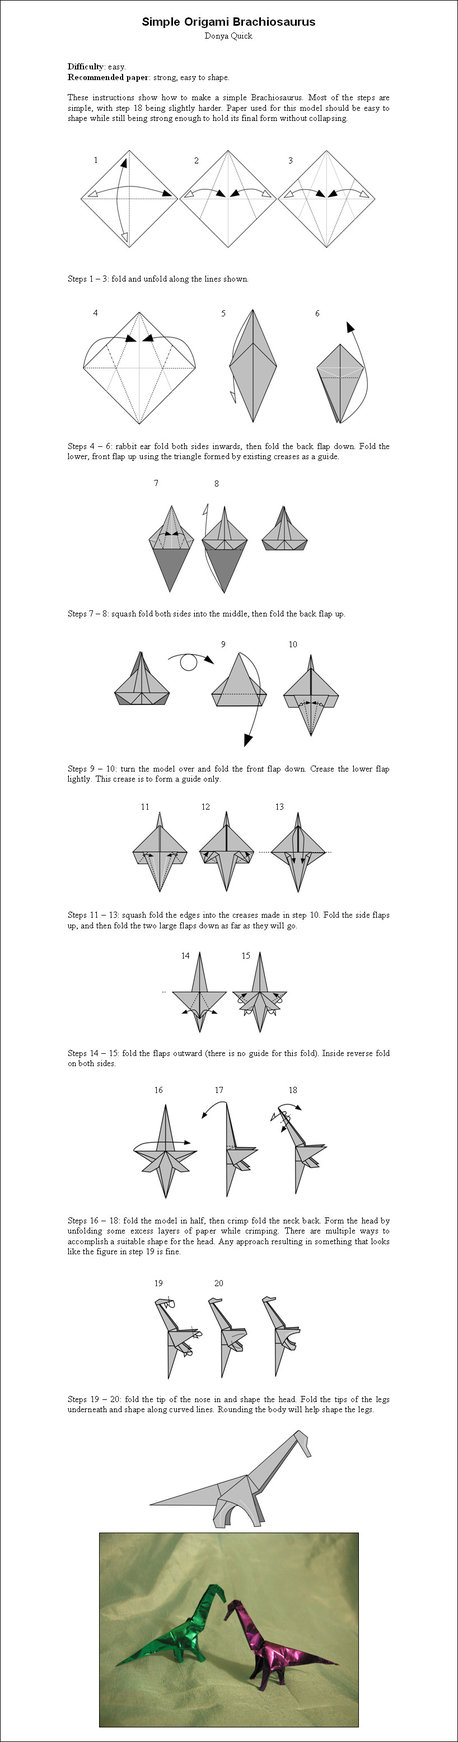 Simple Origami Brachiosaurus By Donyaquick Pinterest Diagrams O Xwing Fighter Diagram Easy Version Money Instructions Tutorial